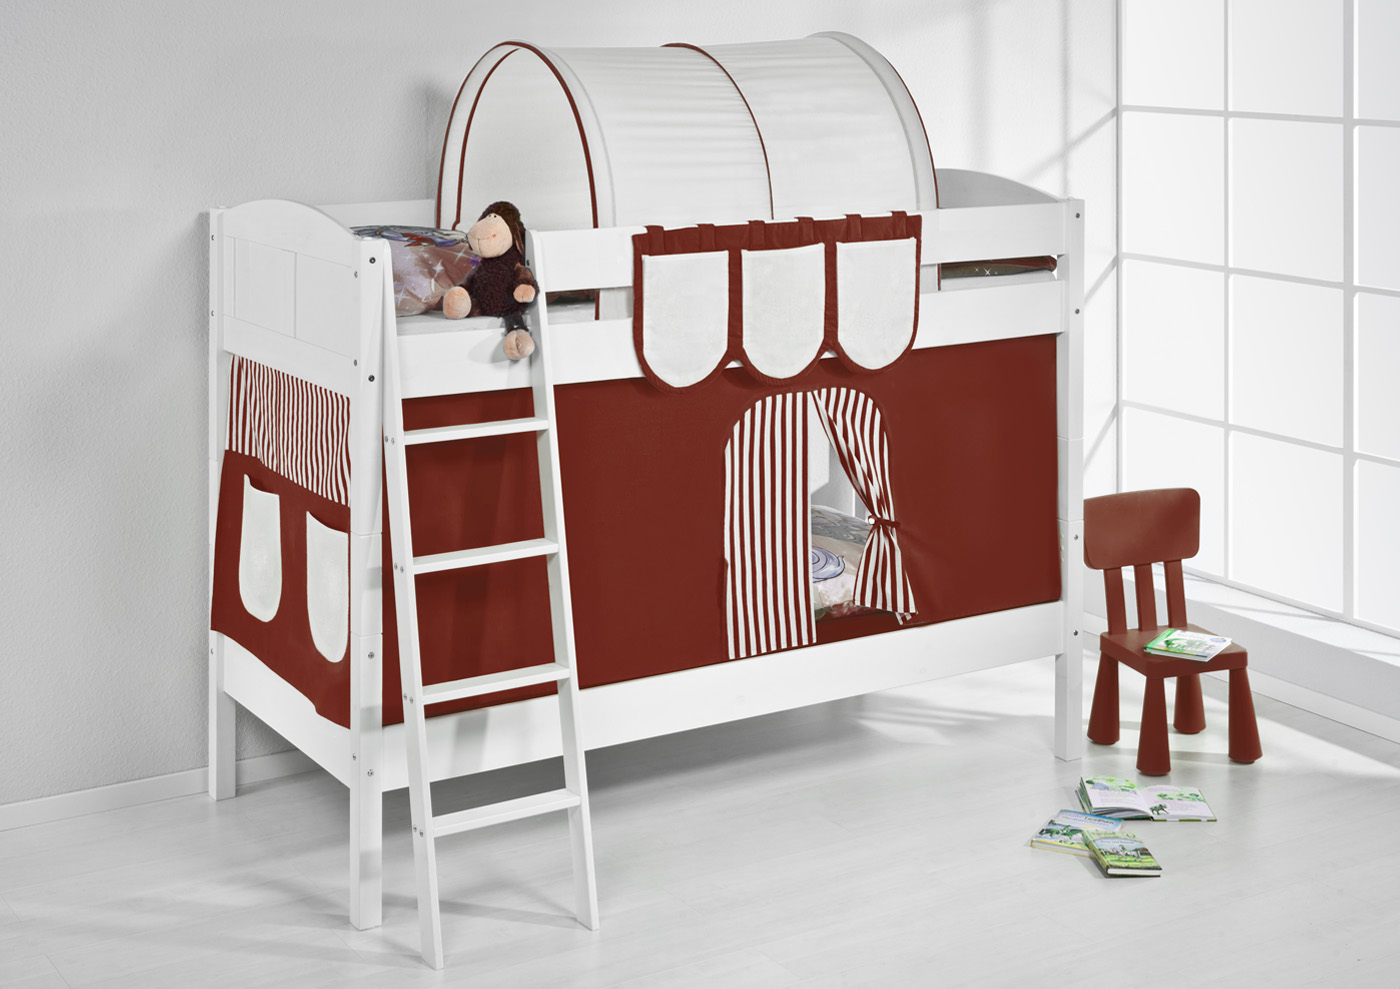 etagenbett hochbett kinder bett aus massiver kiefer ida 4106 wei vorhang ebay. Black Bedroom Furniture Sets. Home Design Ideas